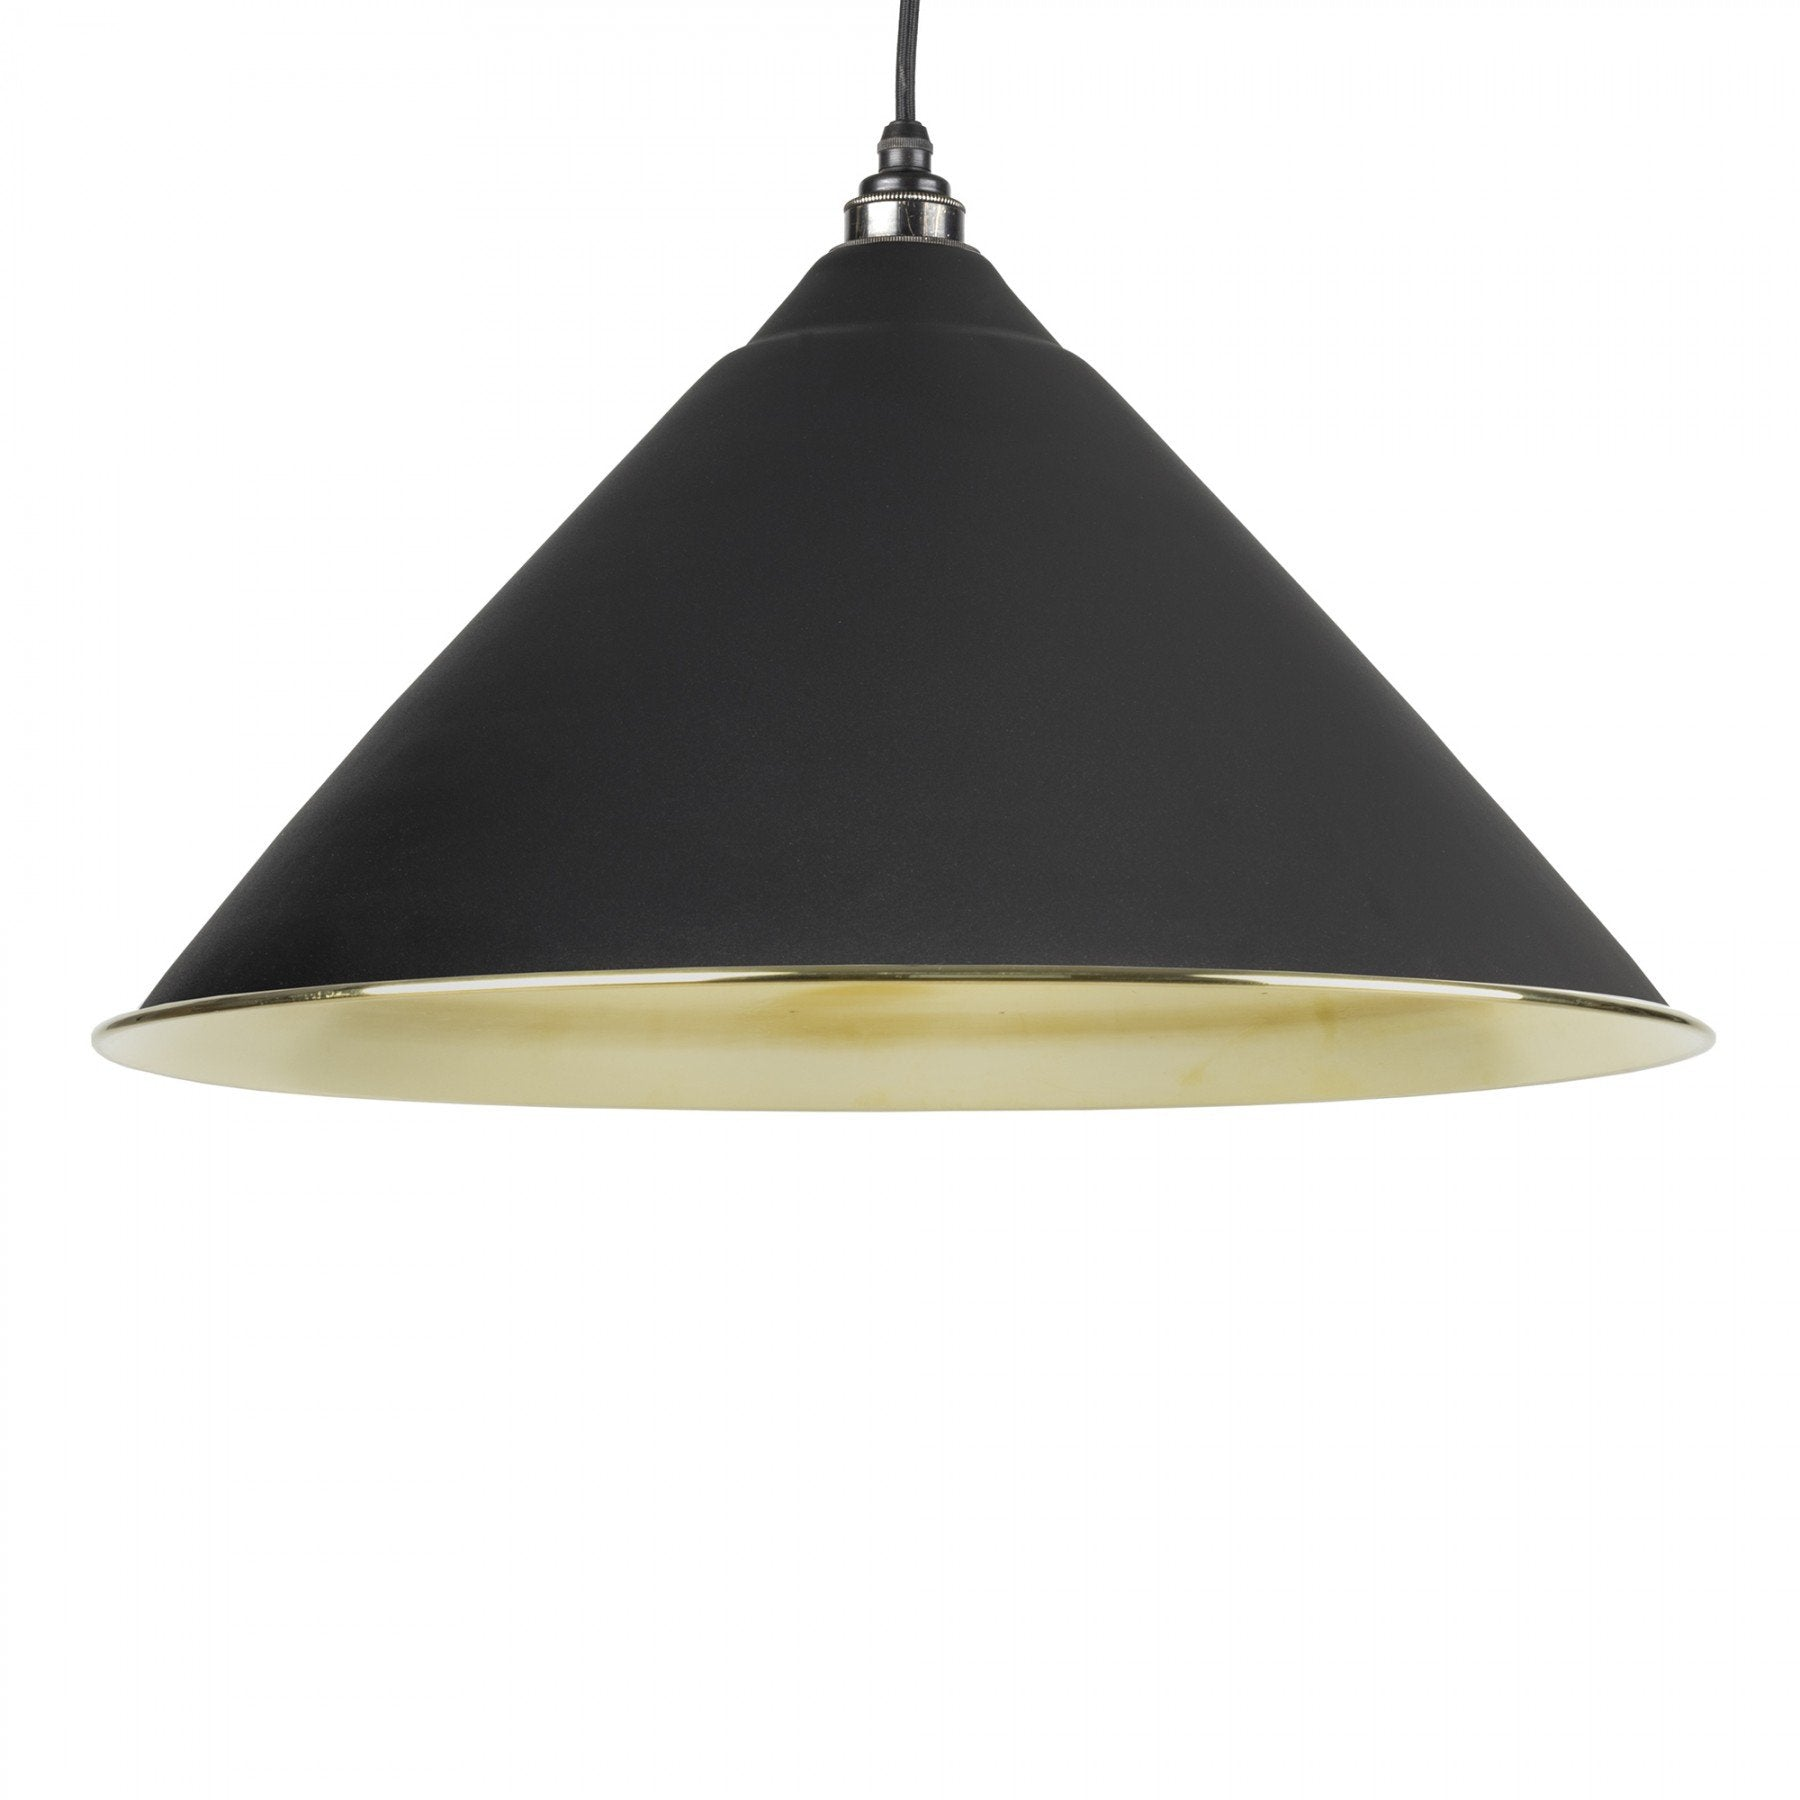 From The Anvil Black & Smooth Brass Interior Hockley Pendant - No.42 Interiors